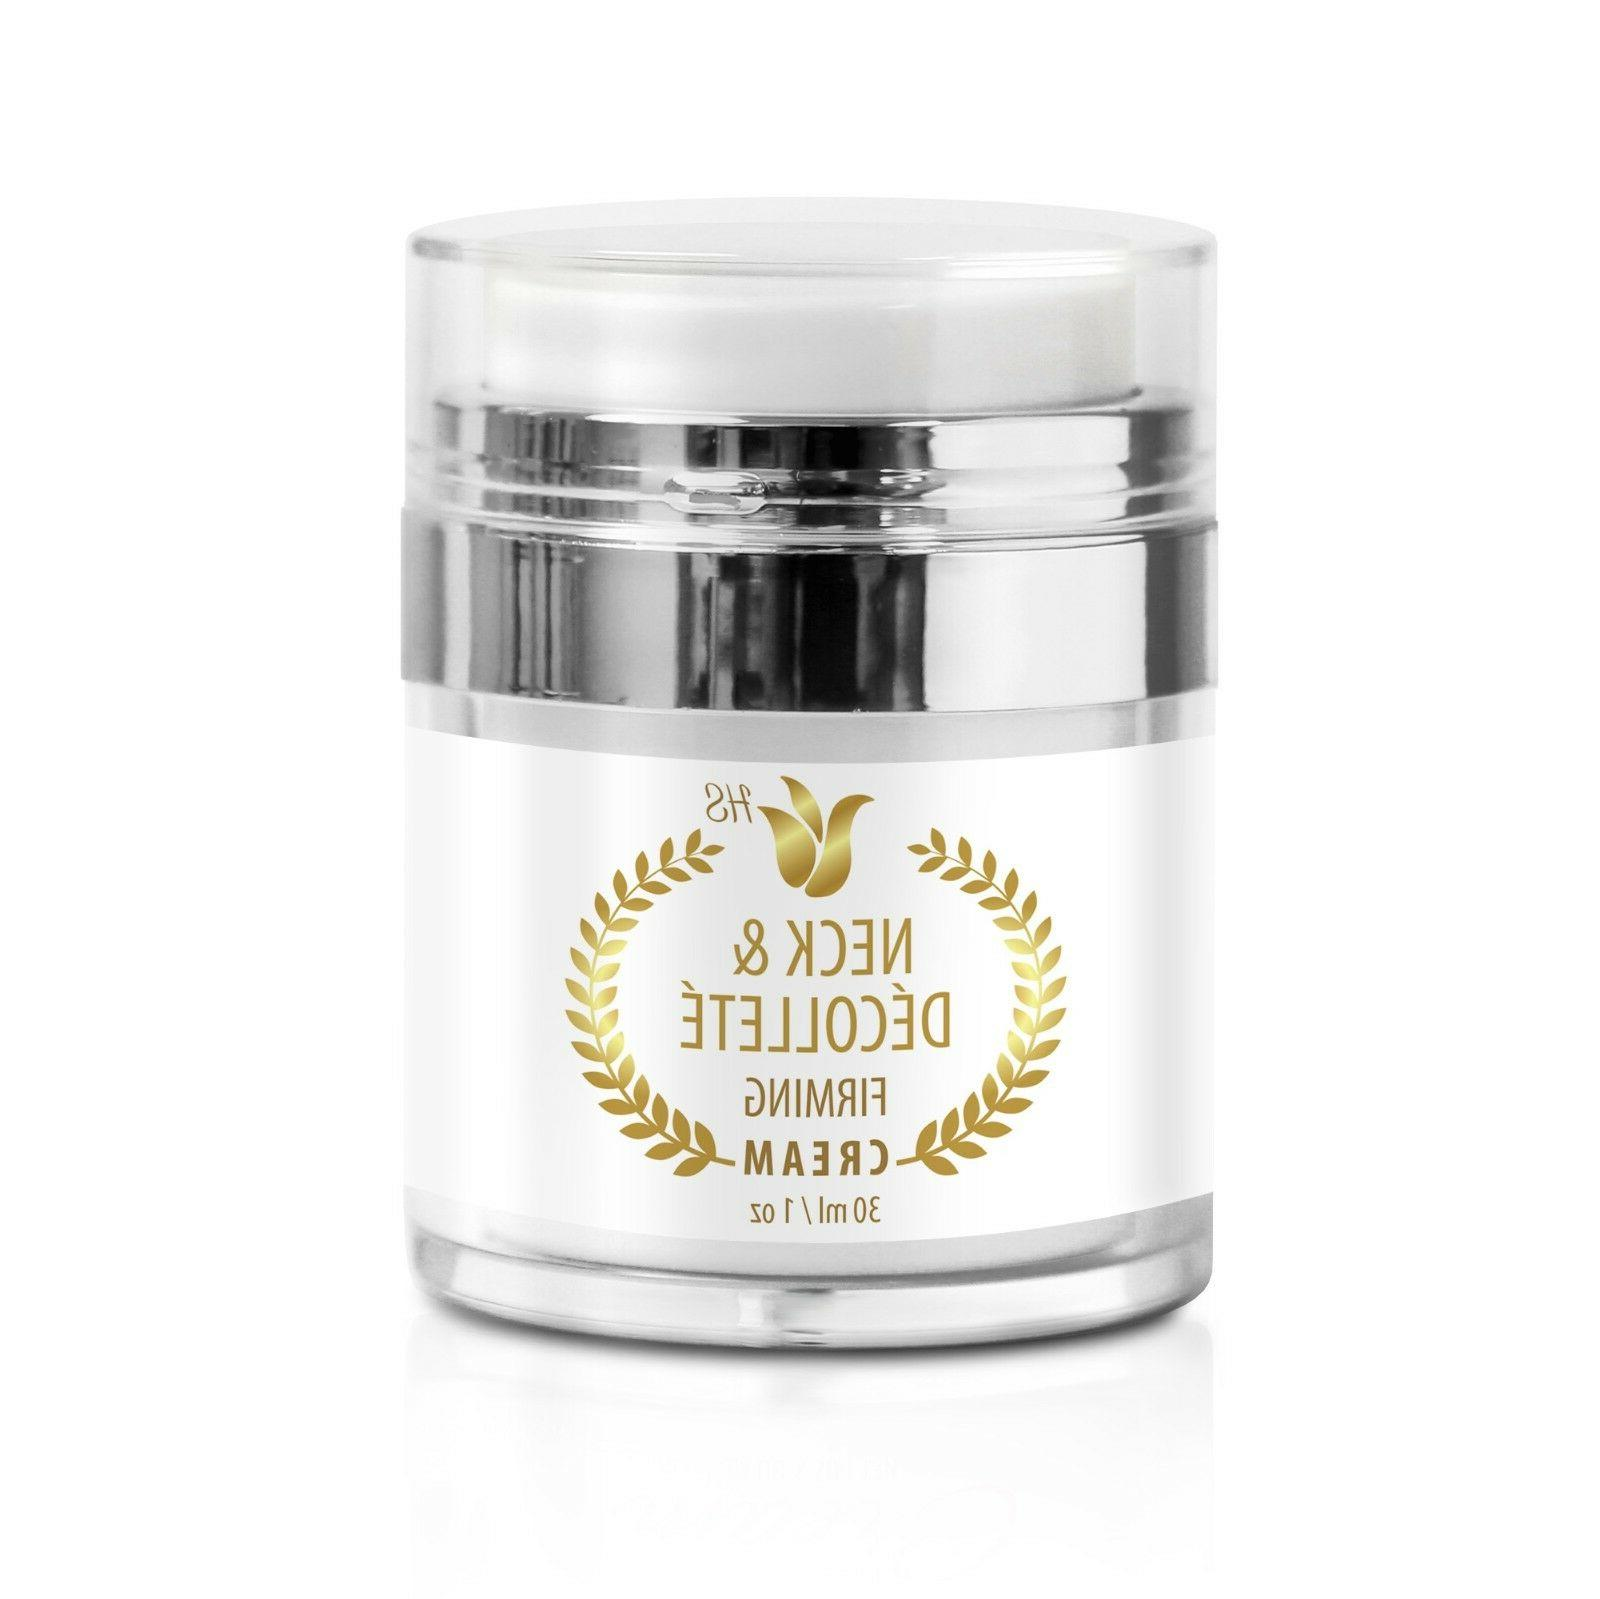 Anti Aging Night - Neck & Decollete Firming Cream 30ml - Coc